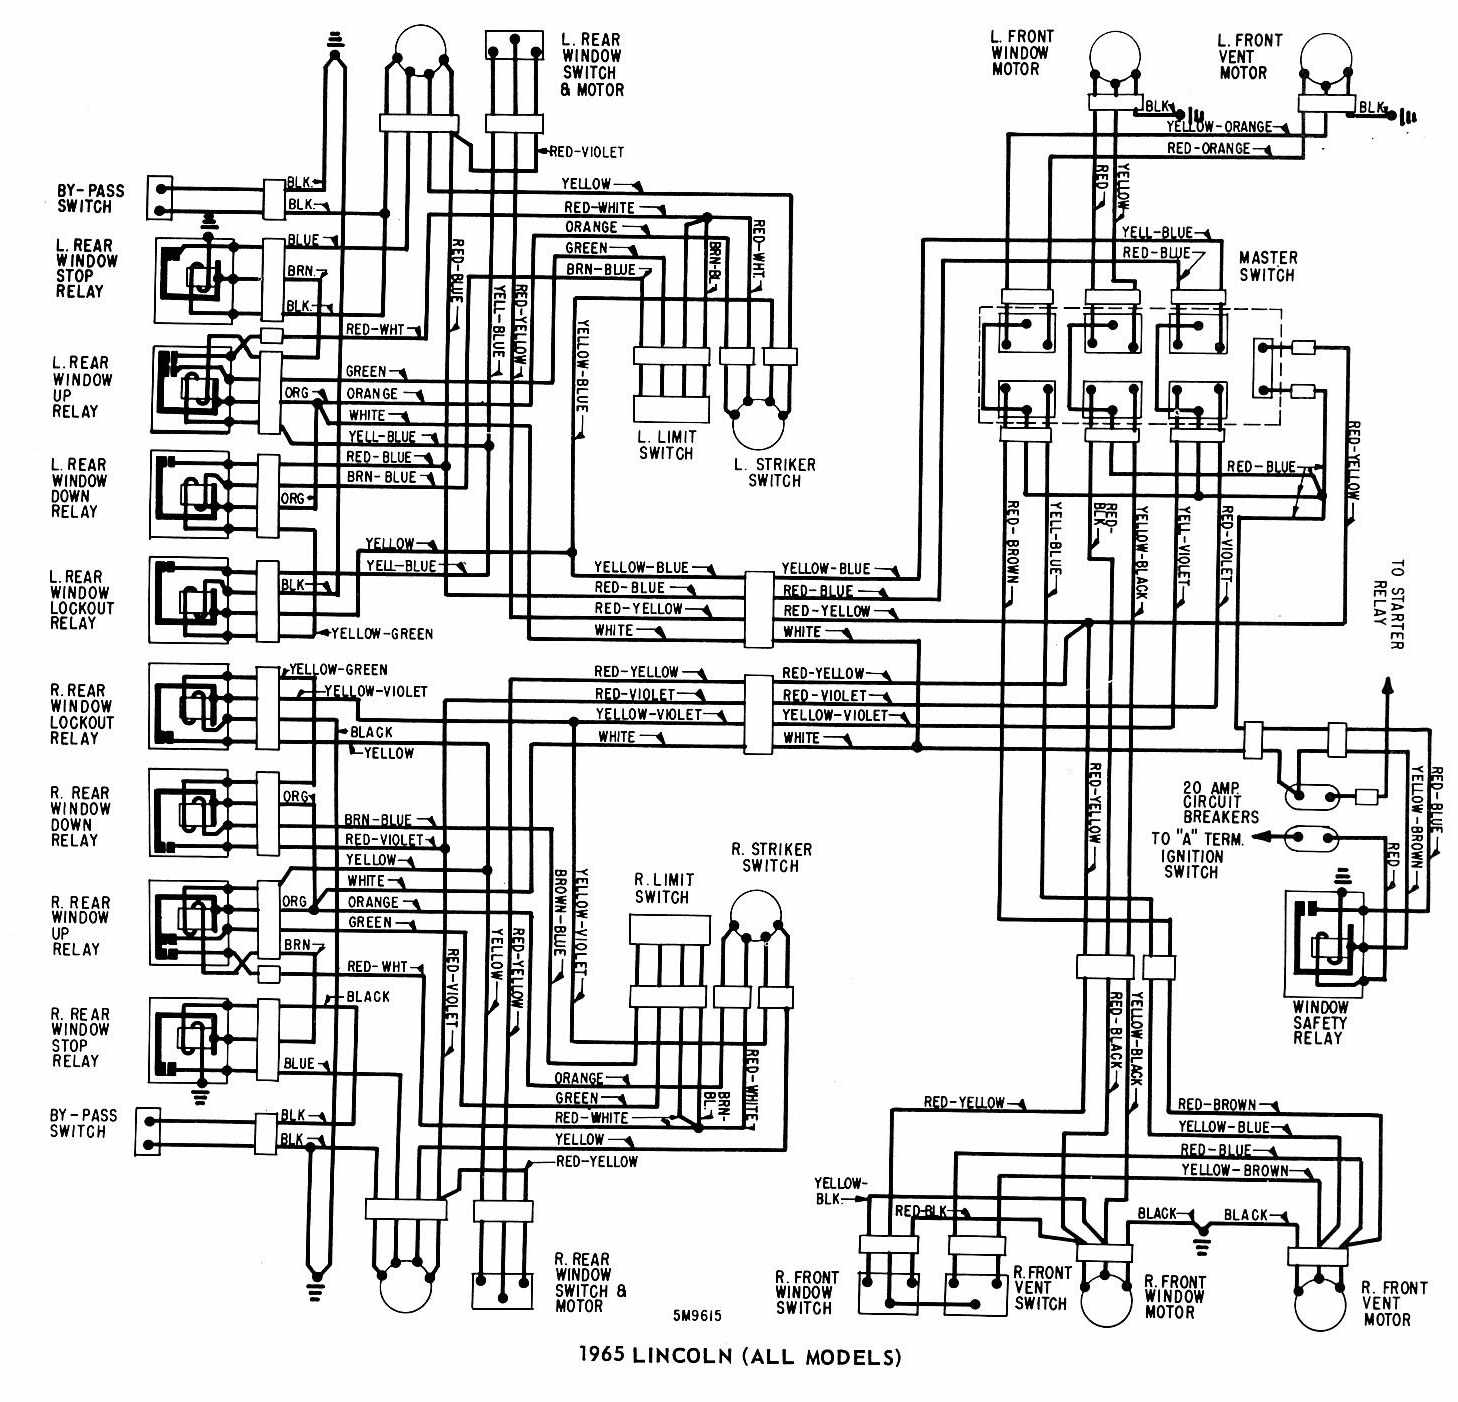 Ge Refrigerator Wiring Diagram from 3.bp.blogspot.com